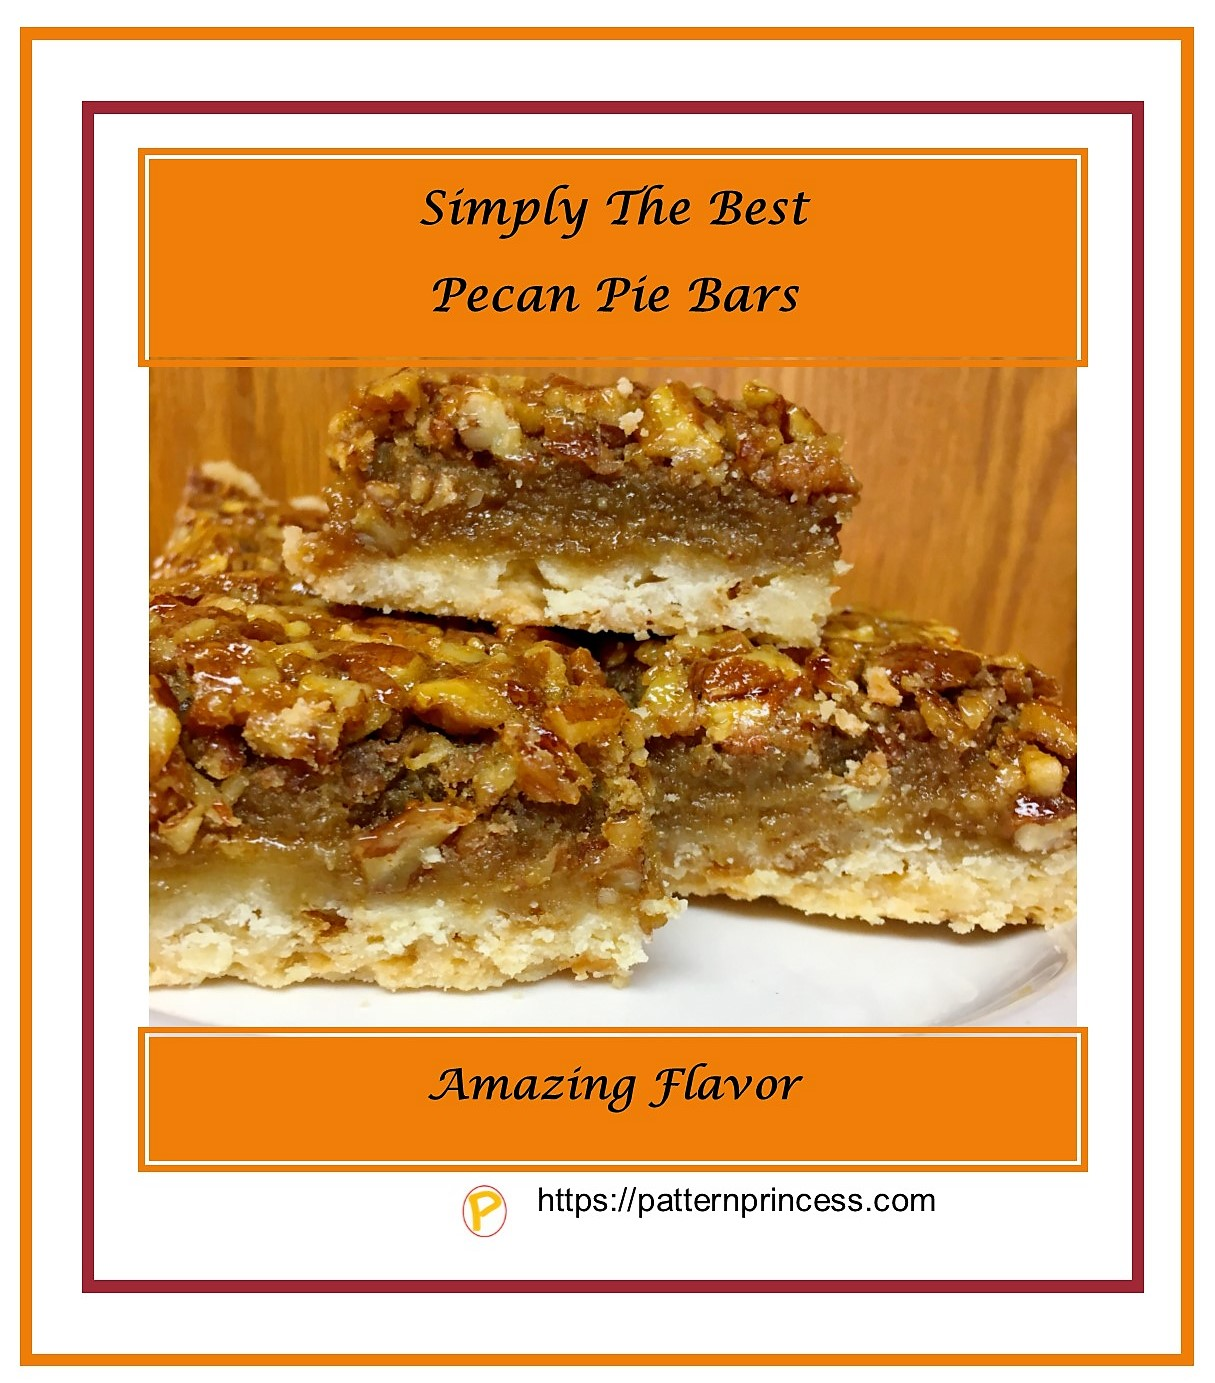 Simply The Best Pecan Pie Bars 1